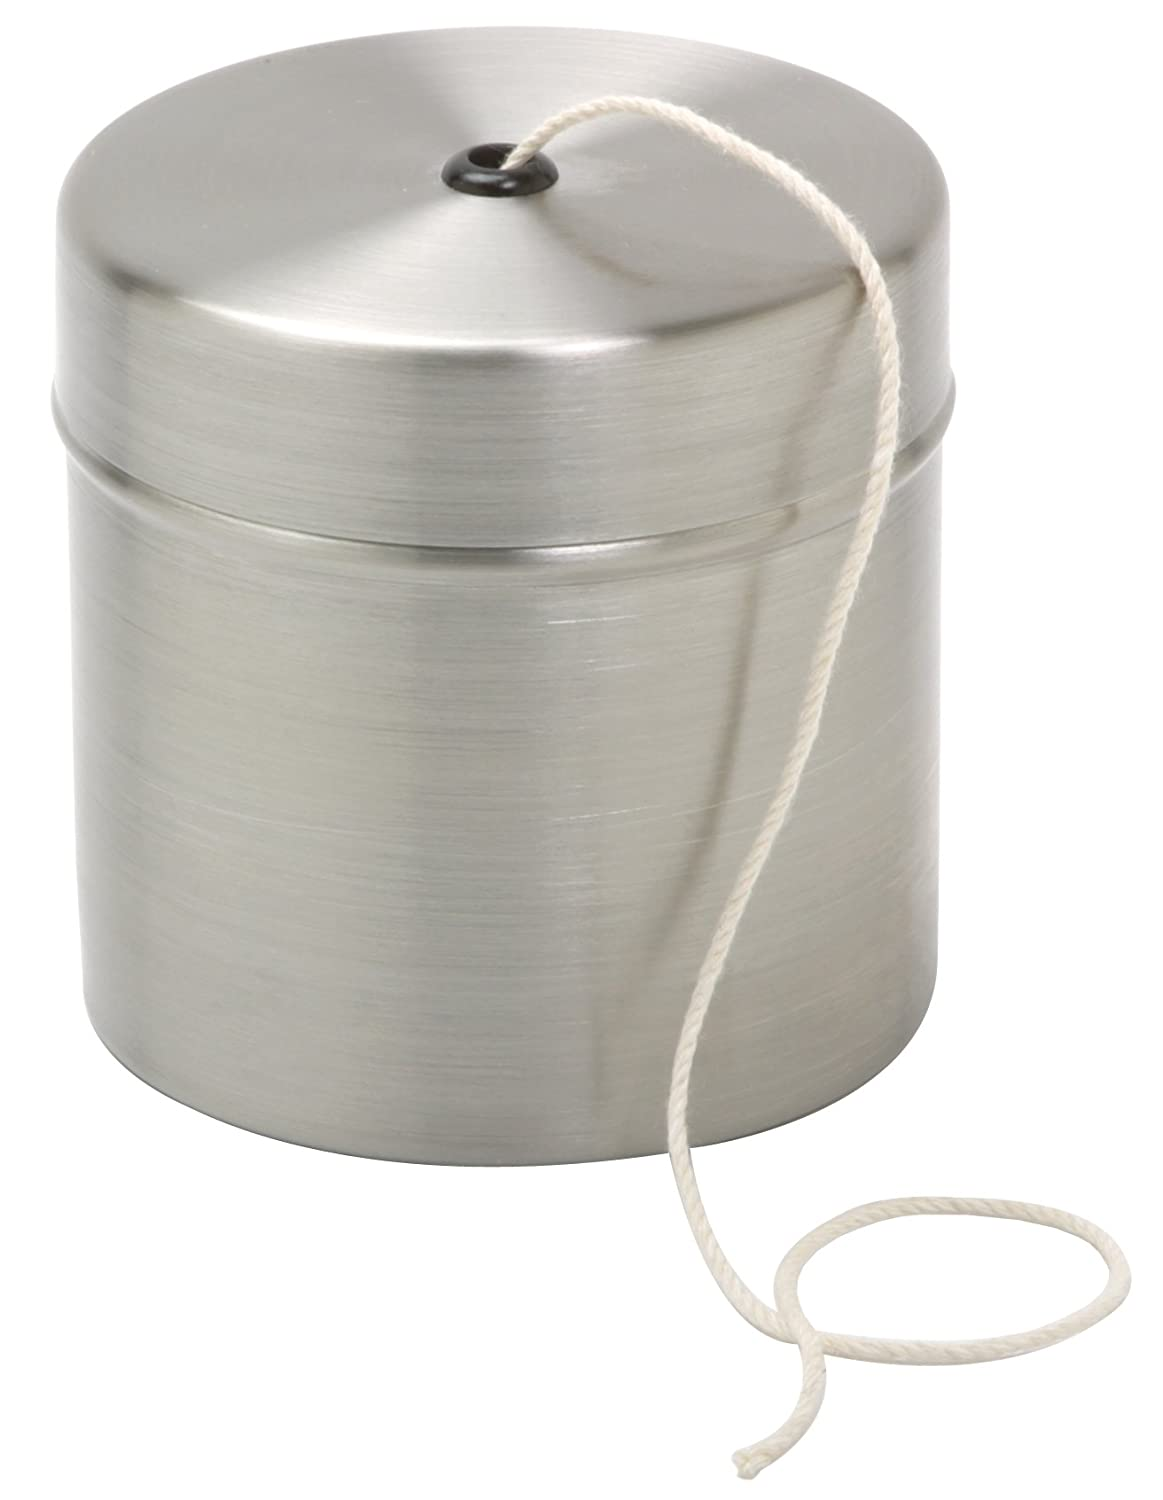 Norpro Stainless Steel Holder with Cotton Cooking Twine, 220 feet